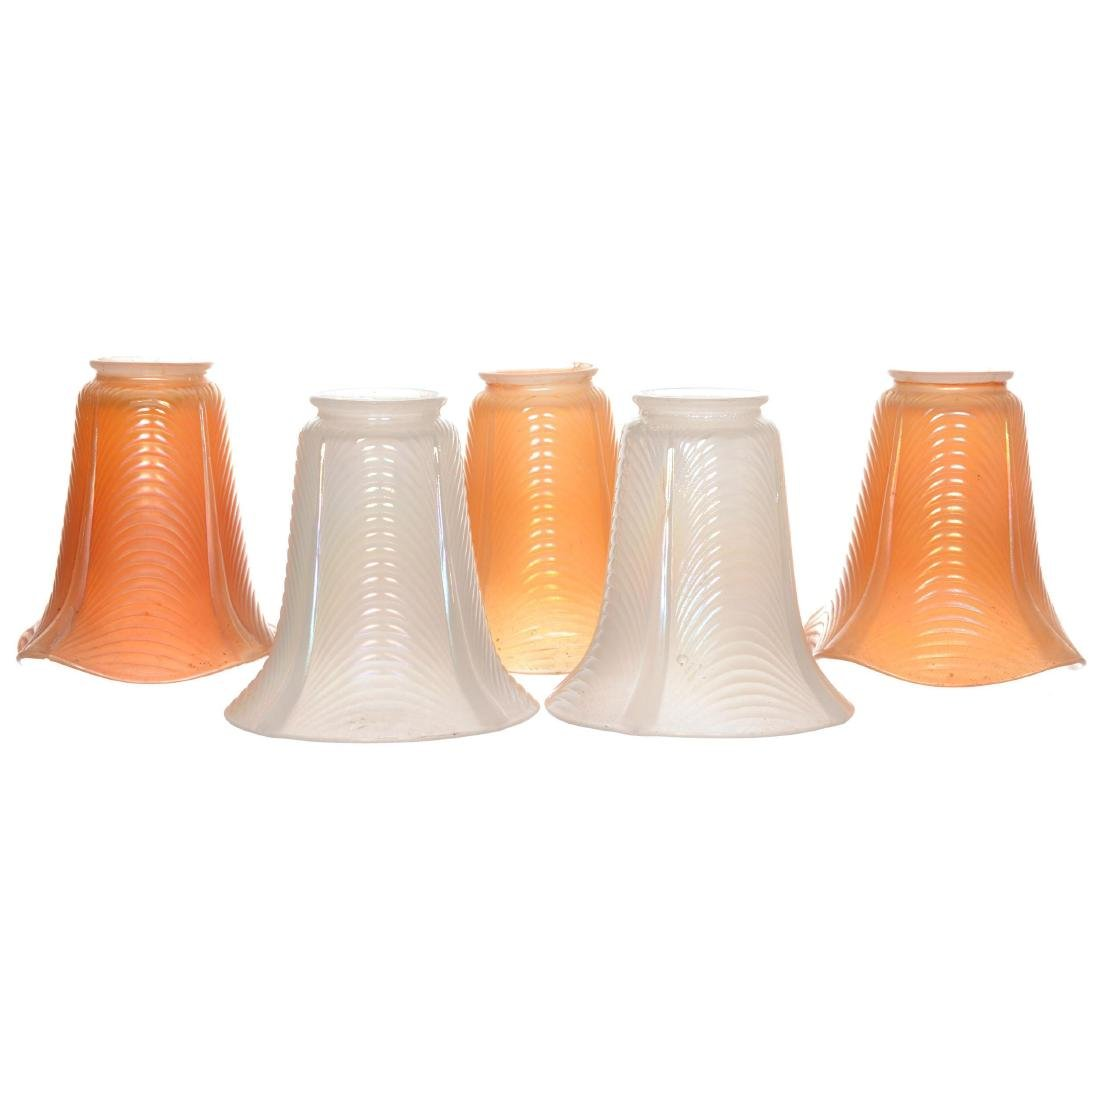 (5) Carnival Glass Lamp Shades